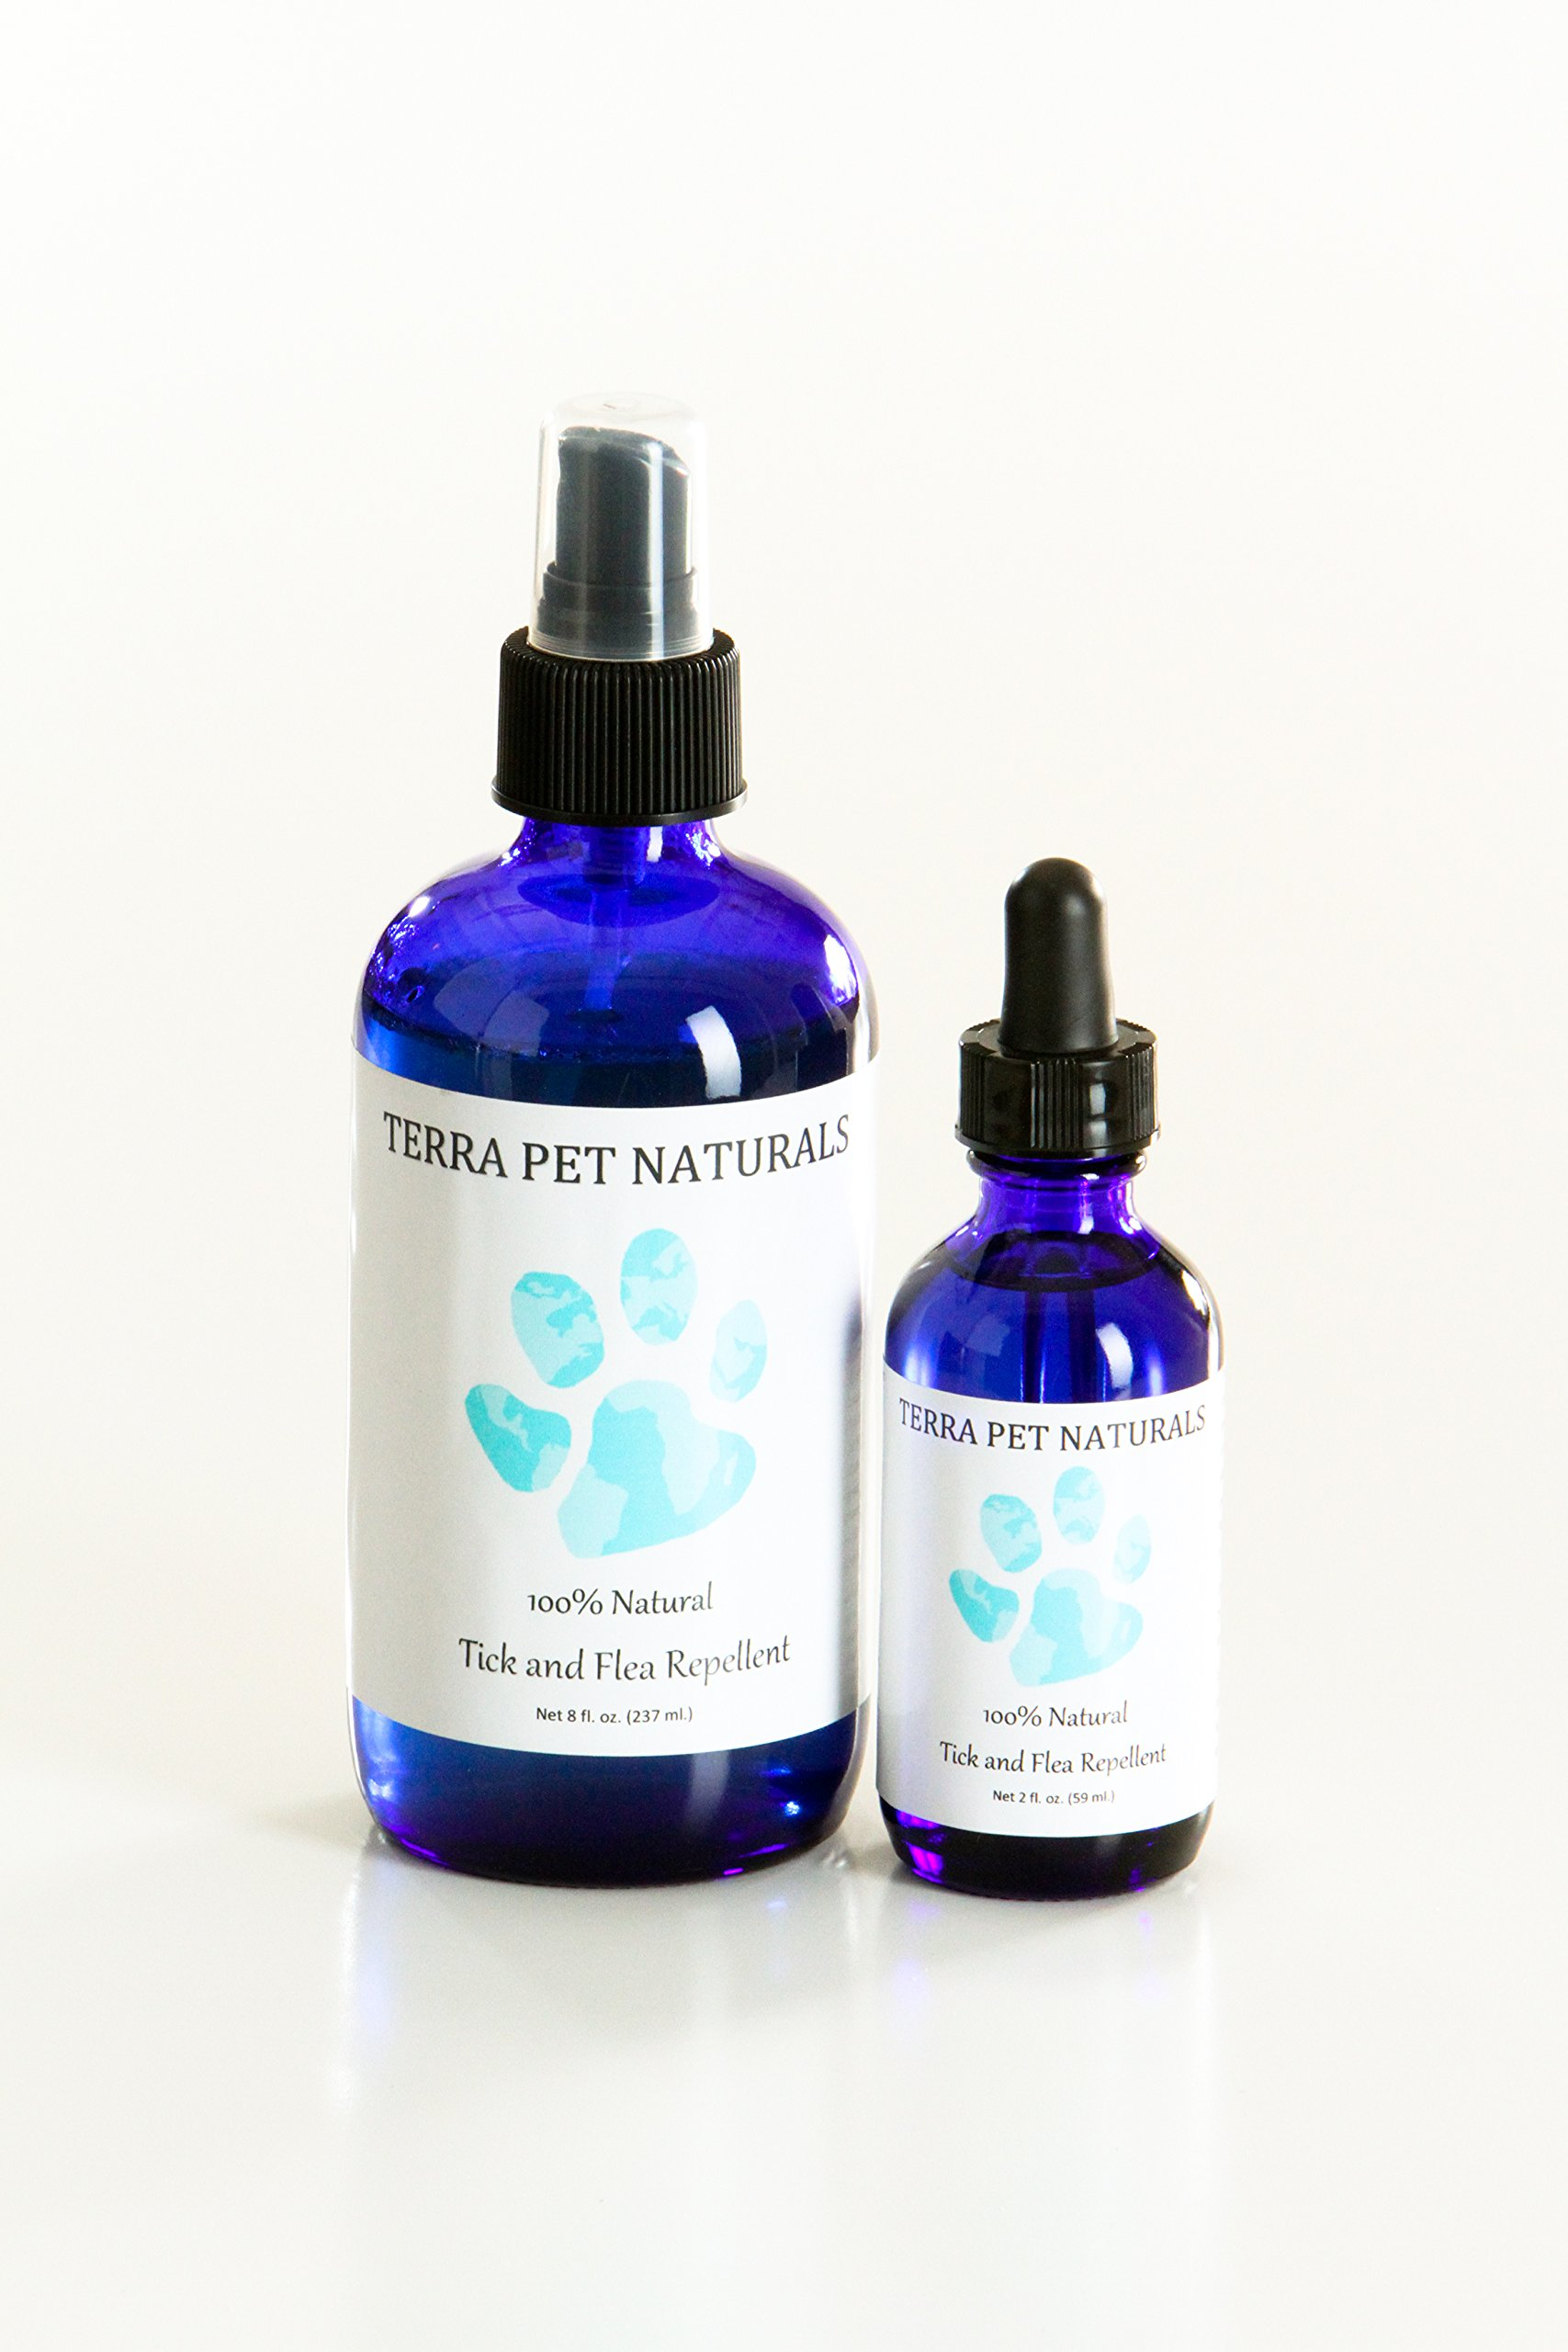 100% Natural Flea and Tick Repellent Spray and Topical Treatment Drops for Dogs for Flea and Tick Prevention and Control. Made with all-natural and organic ingredients.